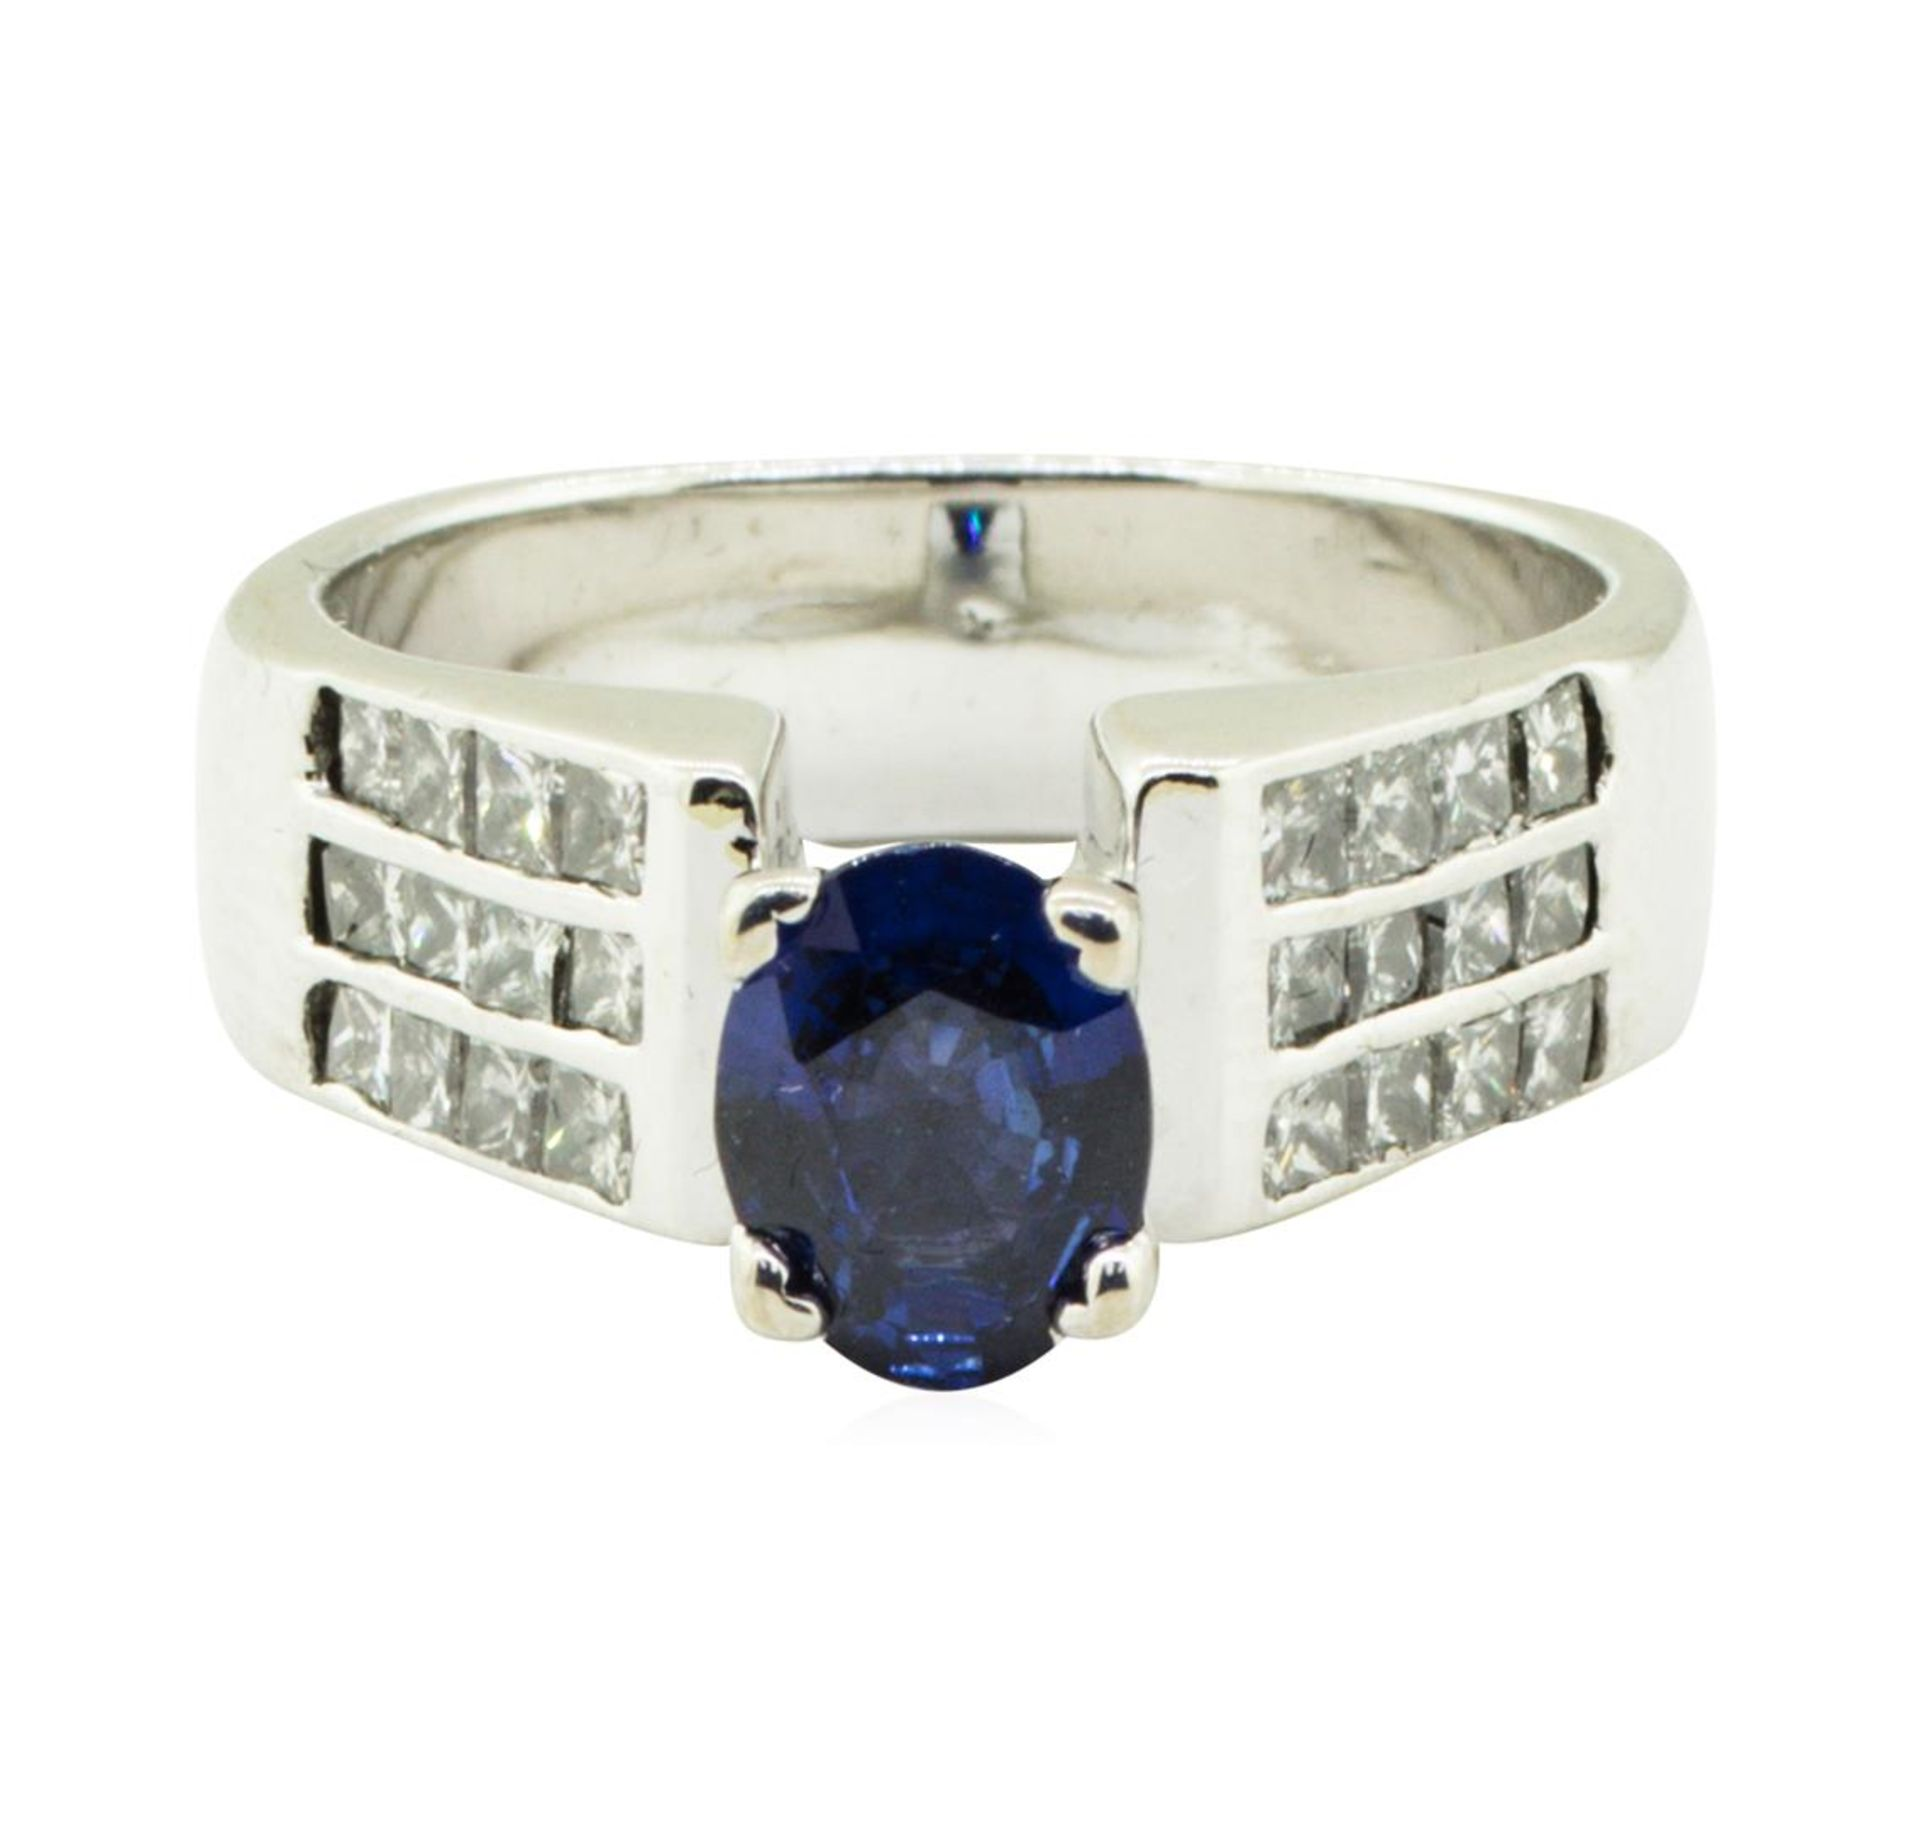 2.17 ctw Oval Brilliant Blue Sapphire And Diamond Ring - 14KT White Gold - Image 2 of 5